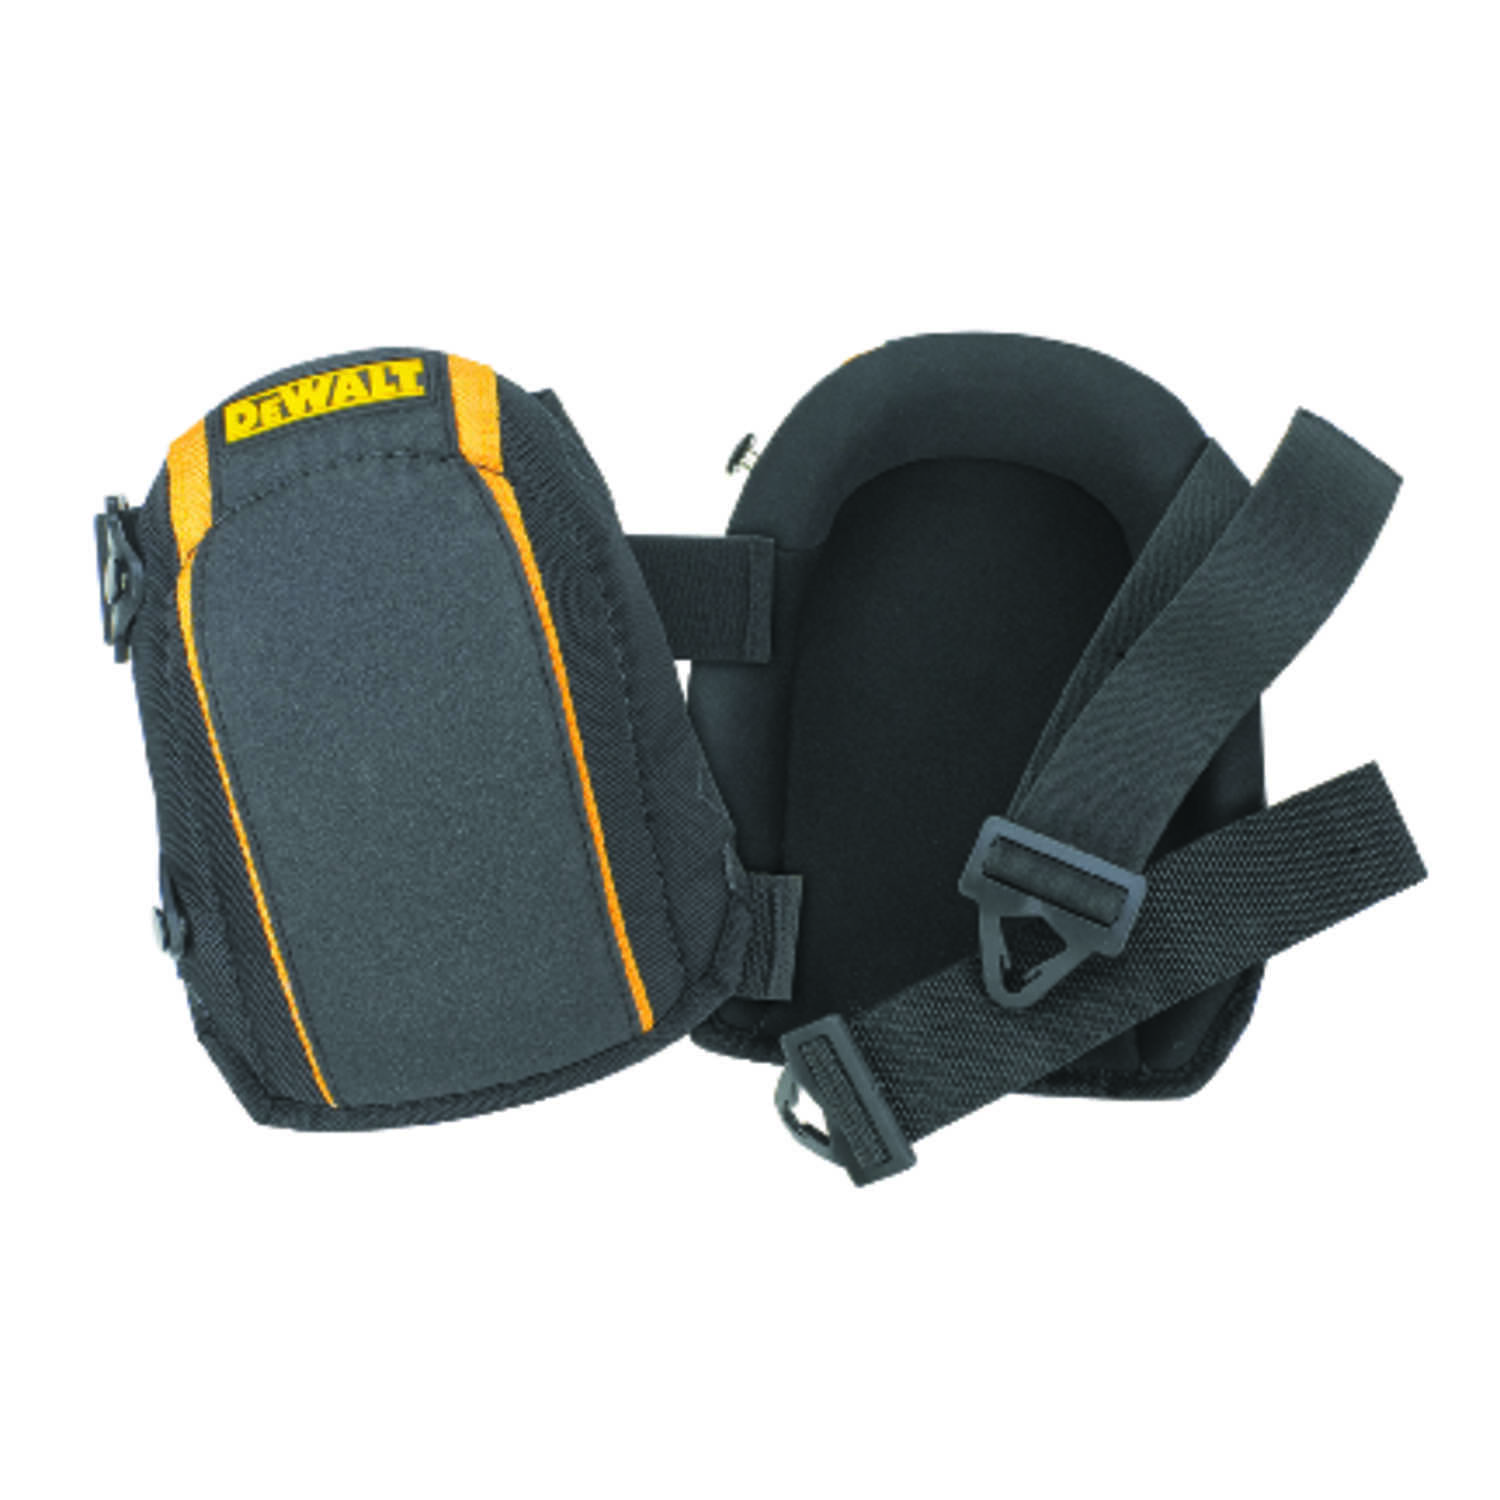 DEWALT By CLC  7 in. L x 4.25 in. W Knee Pads  Black  Non-Marring Foam